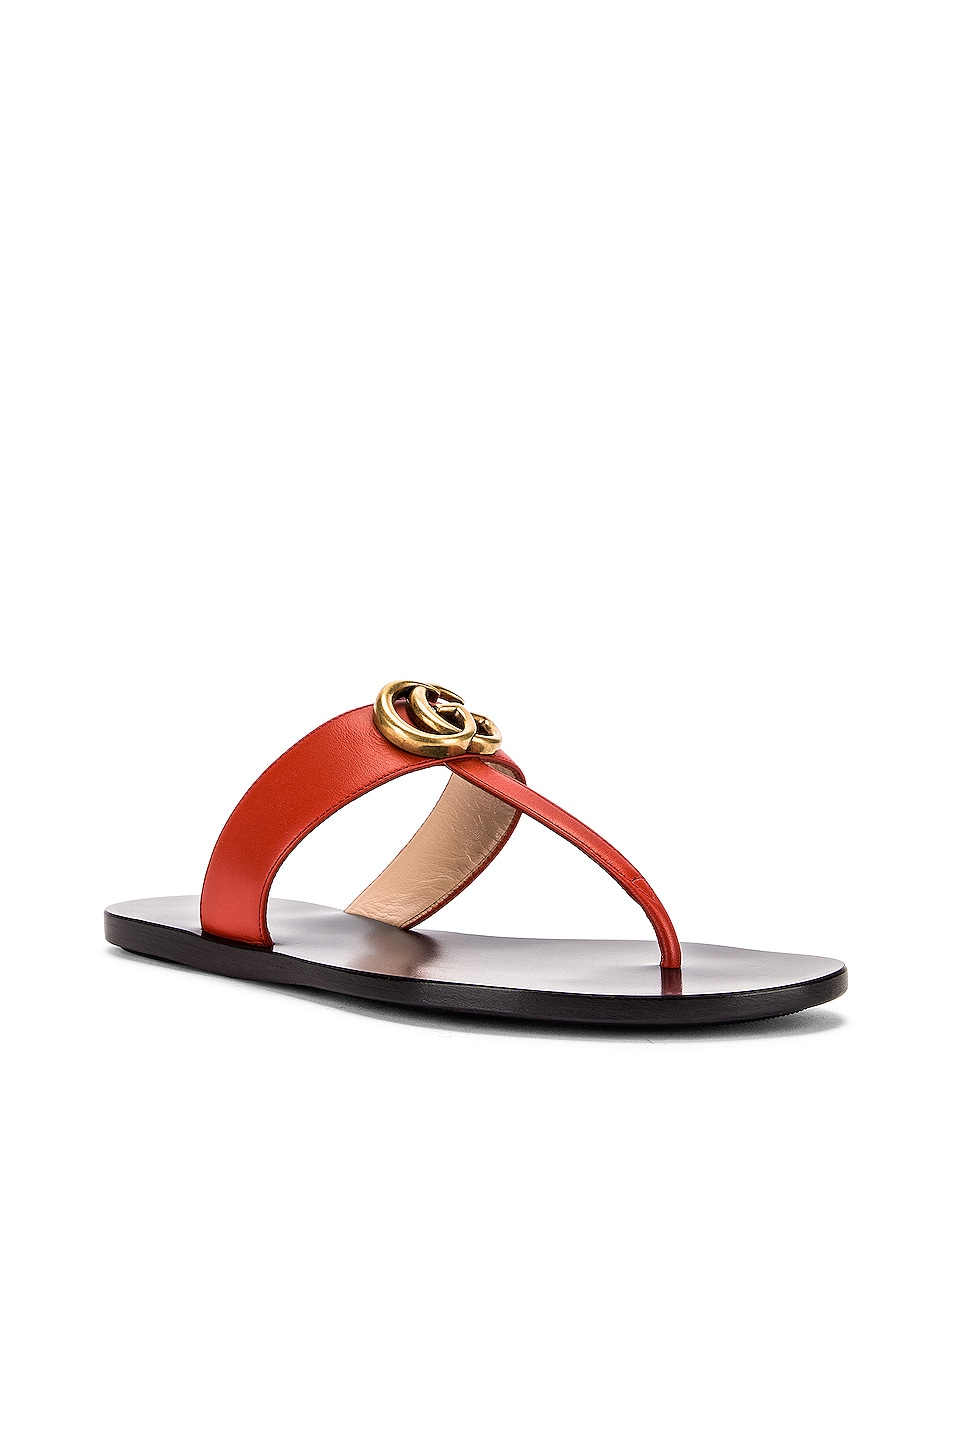 Image 3 of Gucci Double G Leather Thong Sandals in Bright Pumpkin